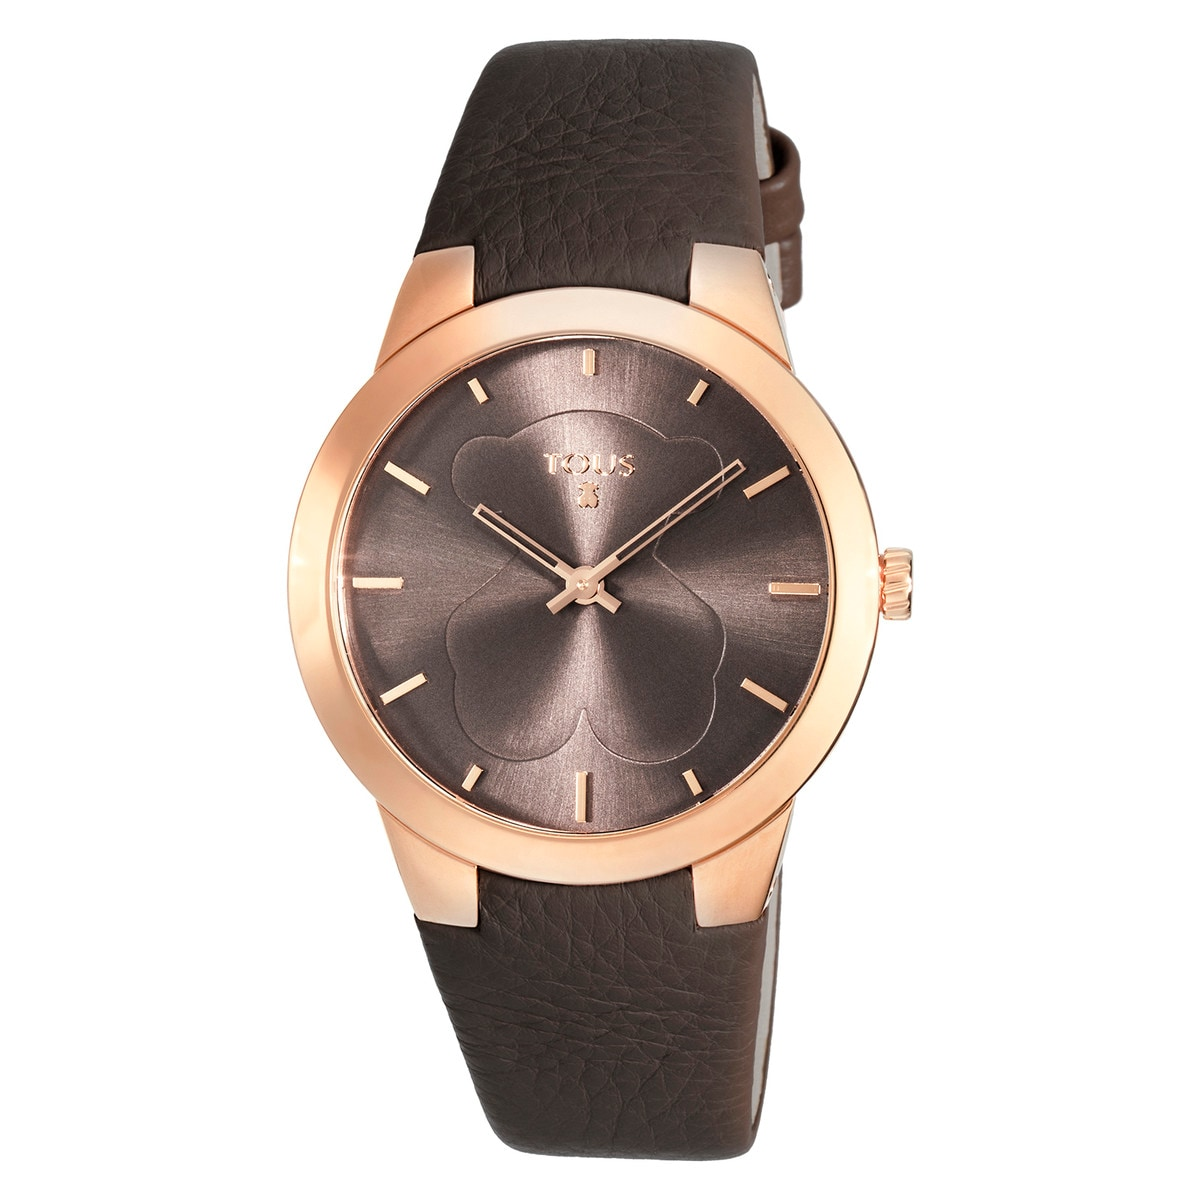 ef31229ea8d4 Pink IP Steel B-Face Watch with brown Leather strap - Tous Site US